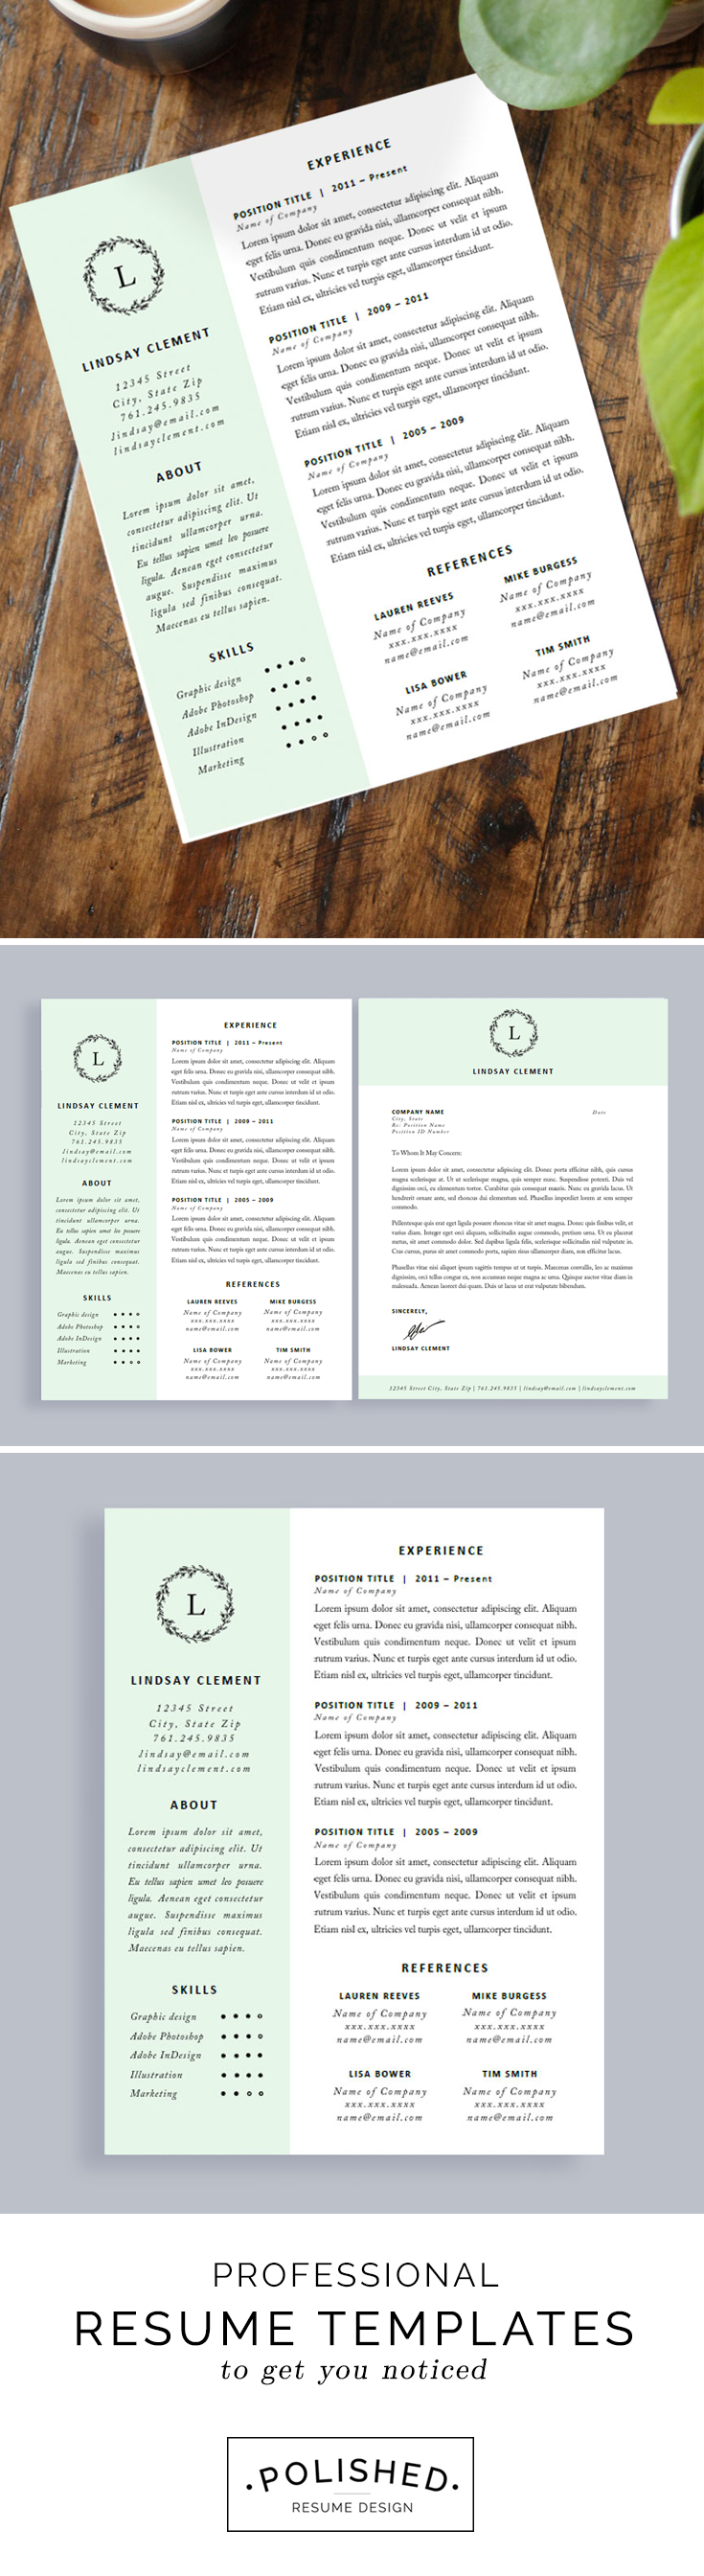 Professional Resume Templates For Microsoft Word Features  And